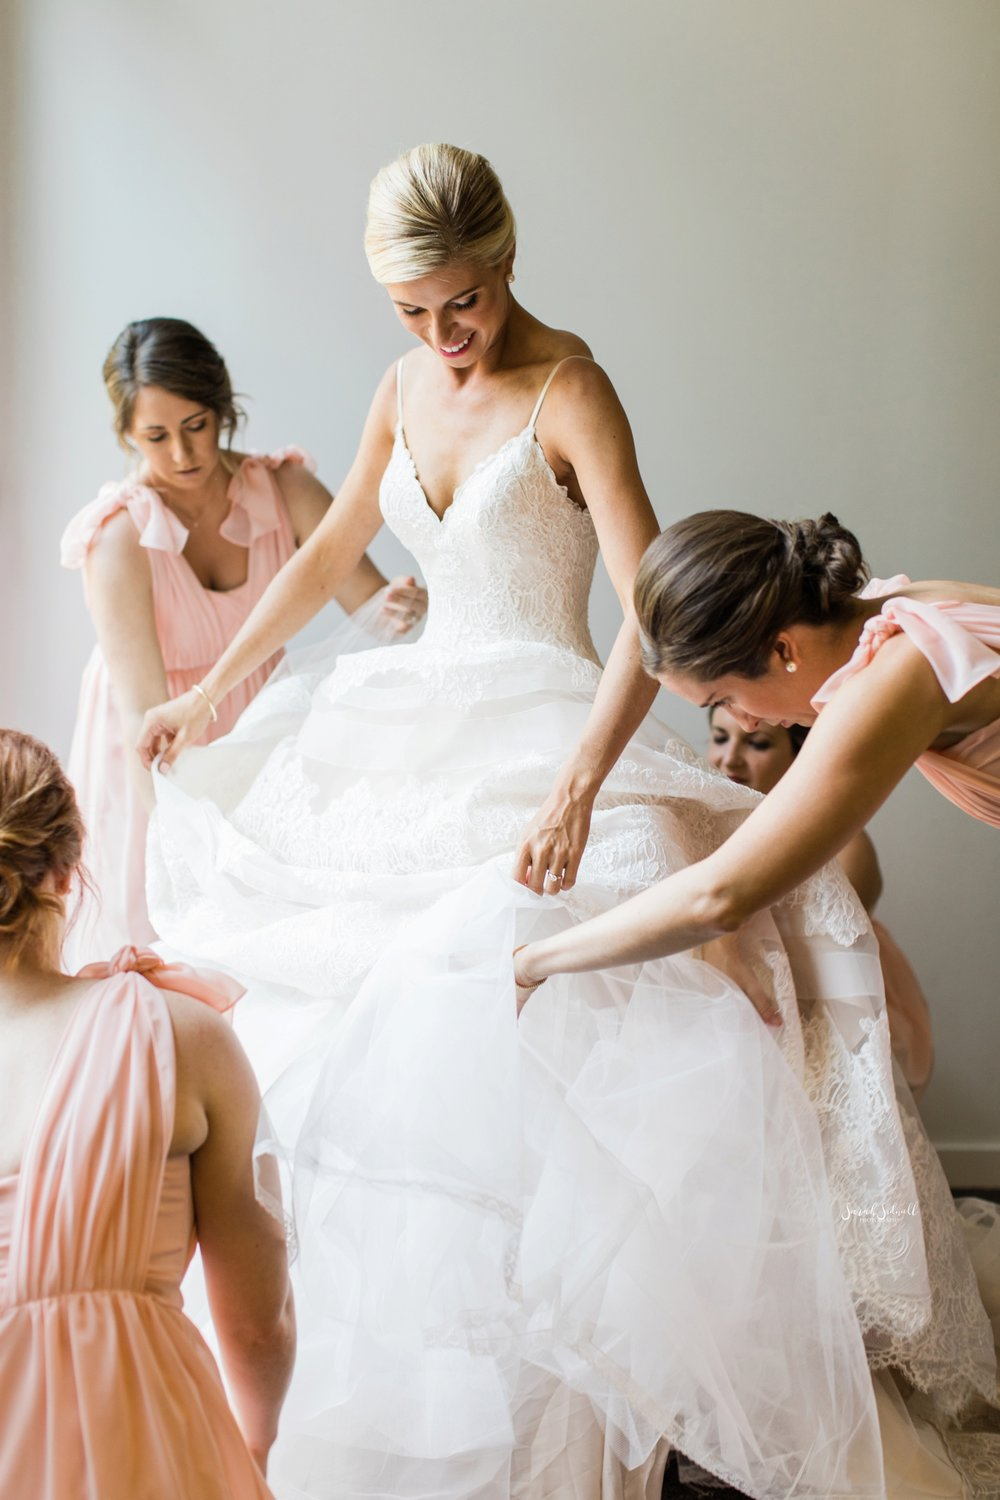 A bride gets into her wedding dress before her ceremony.